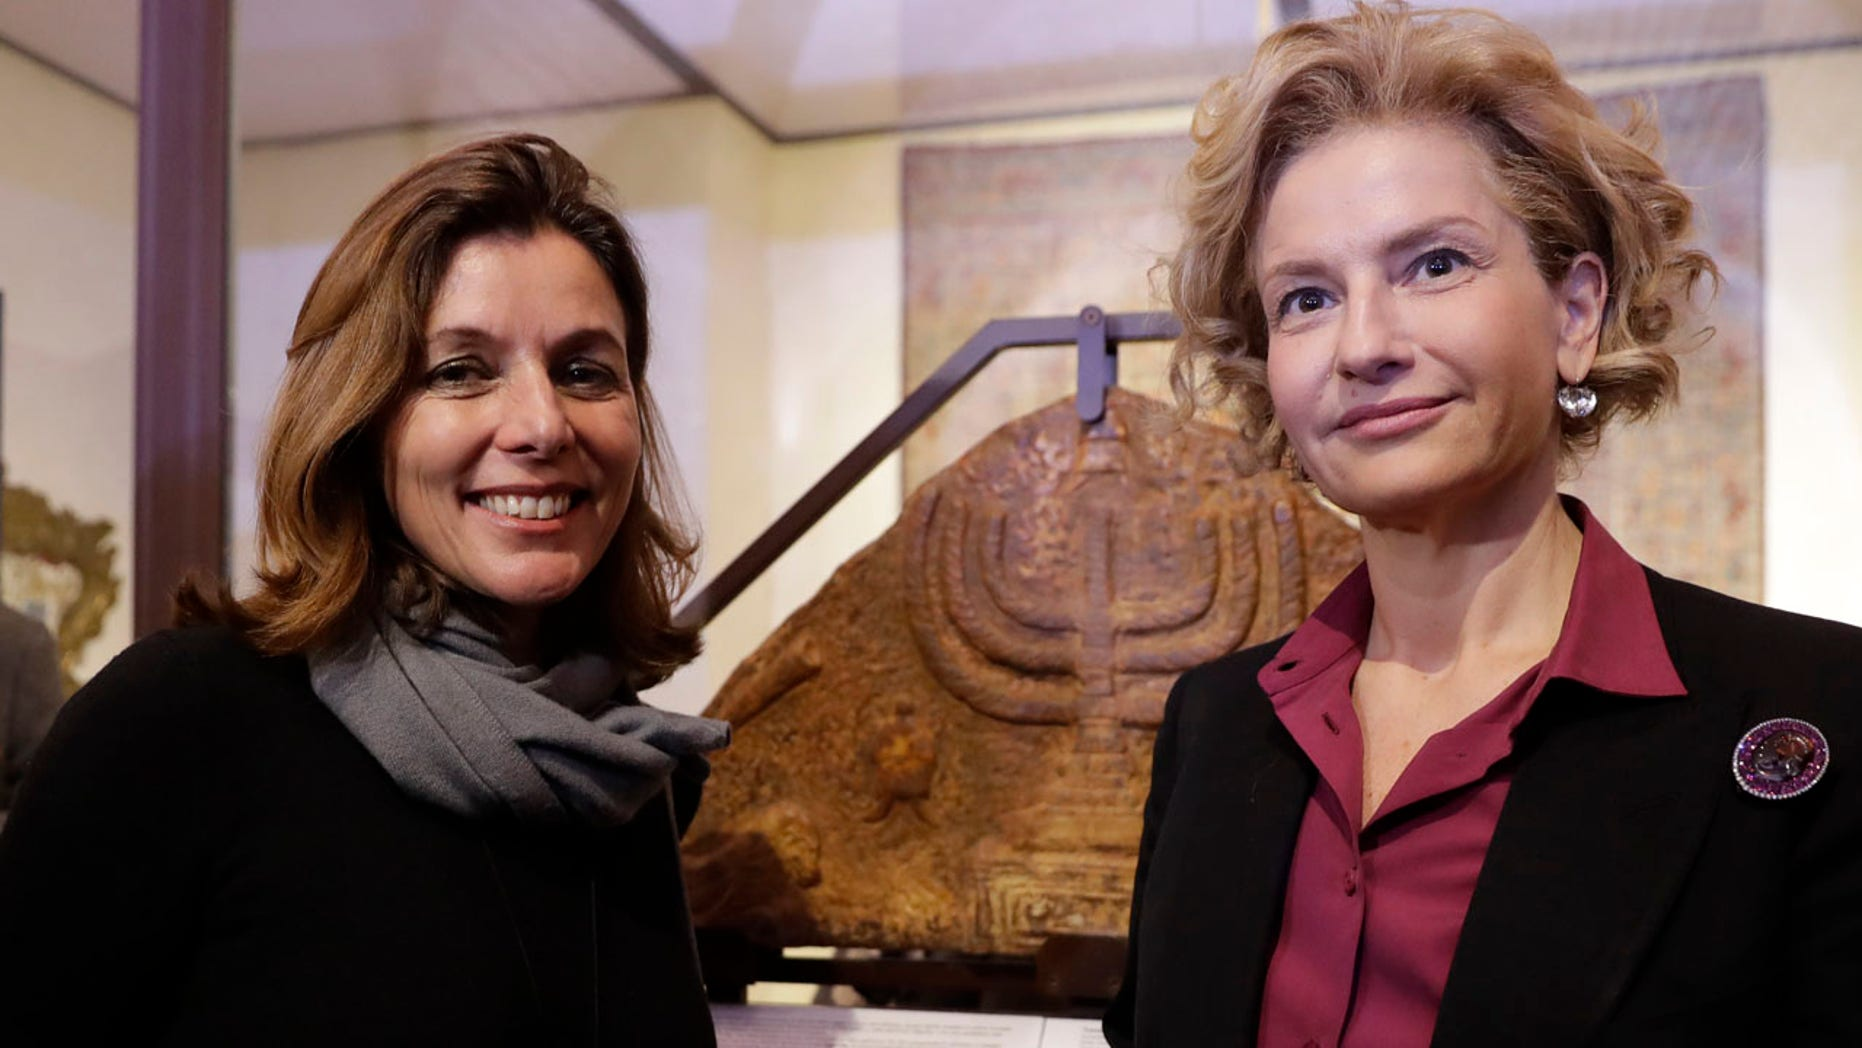 Feb. 20, 2017: Director of the Vatican Museums, Barbara Jatta, left, and Director of Rome's Jewish Museum Alessandra Di Castro pose for a photo in front of a bas-relief showing a menorah at the end of a press conference in Rome.